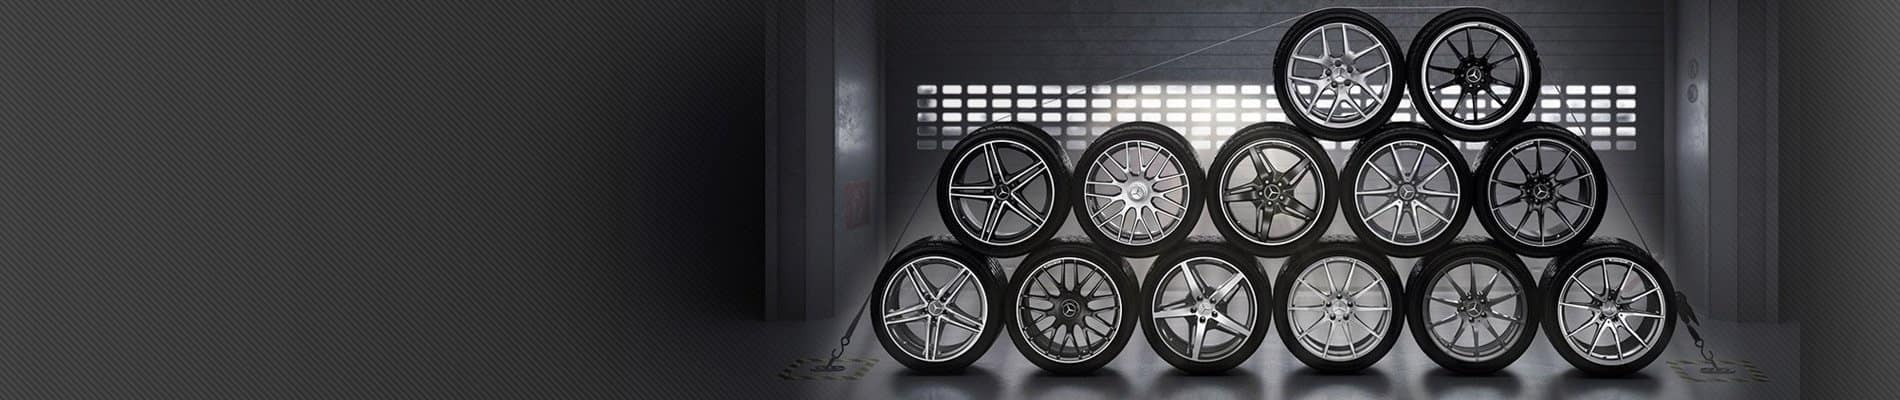 Mercedes benz genuineparts and genuineaccessories offers for Mercedes benz markham